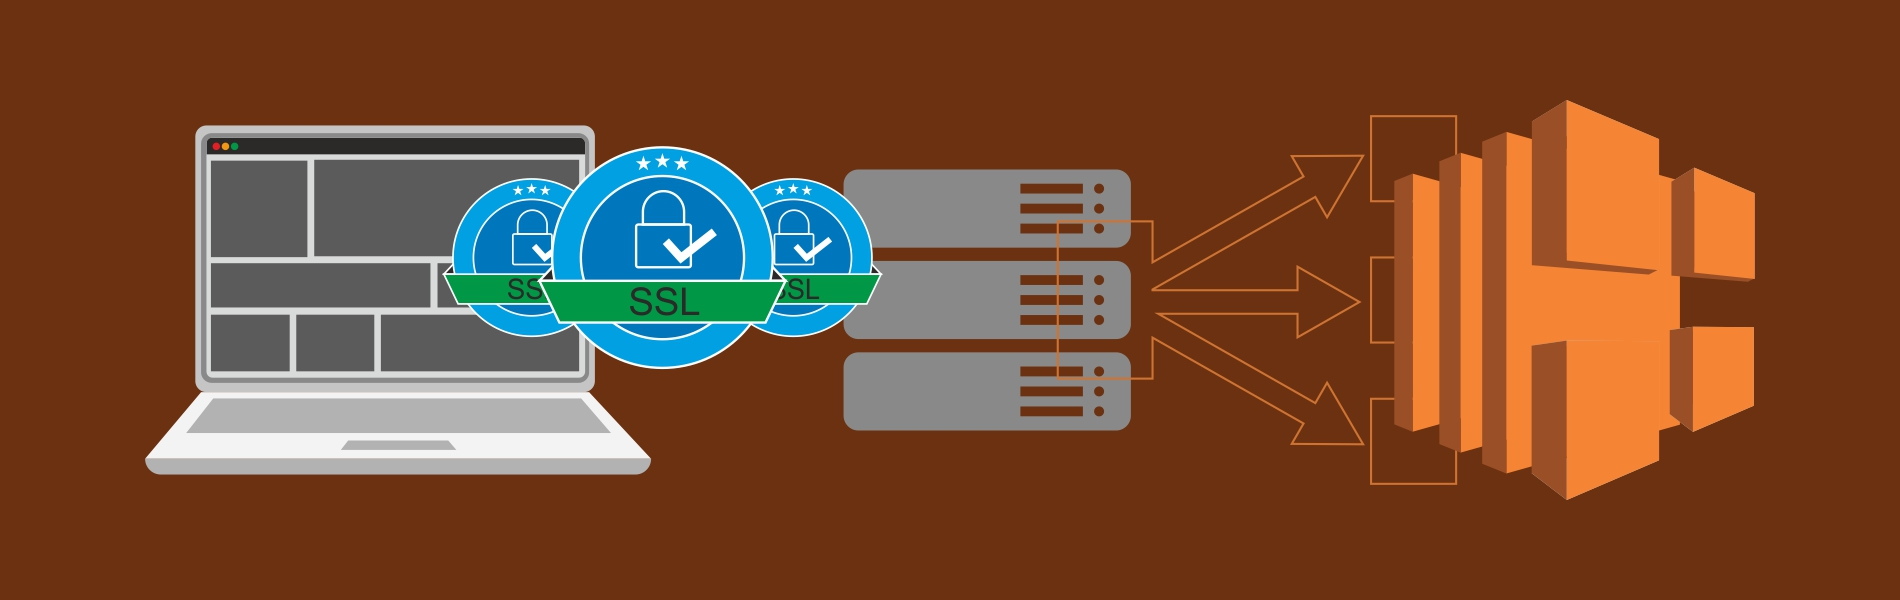 Blog-Header-Adding-multiple-SSL-certificates-on-single-AWS-Elastic-Load-Balancer-ELB